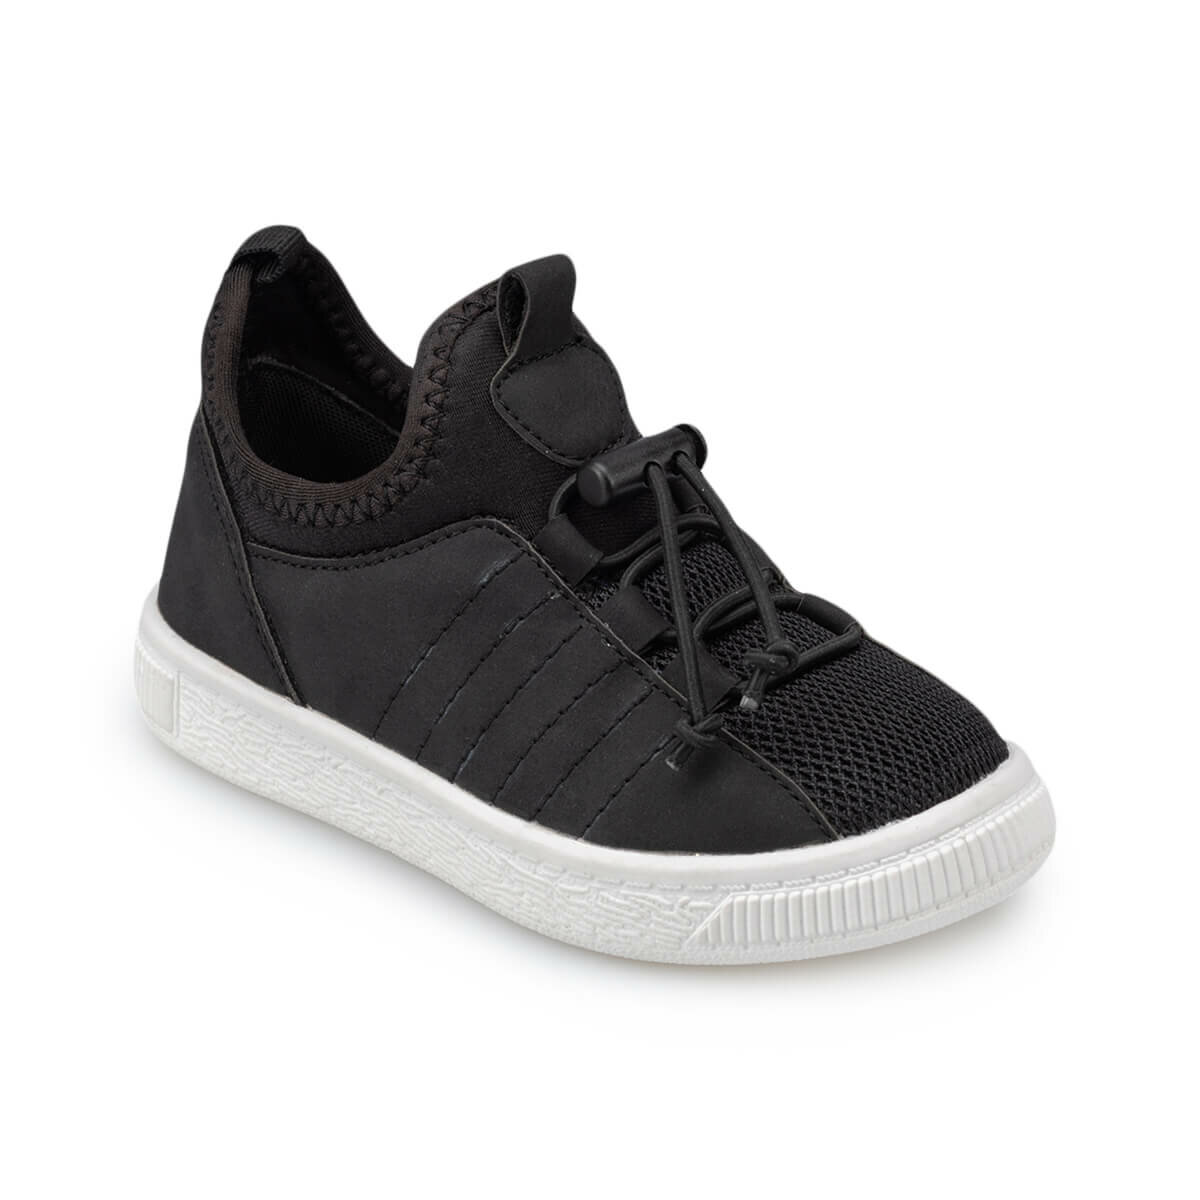 FLO 91.511107.P Black Male Child Sneaker Shoes Polaris